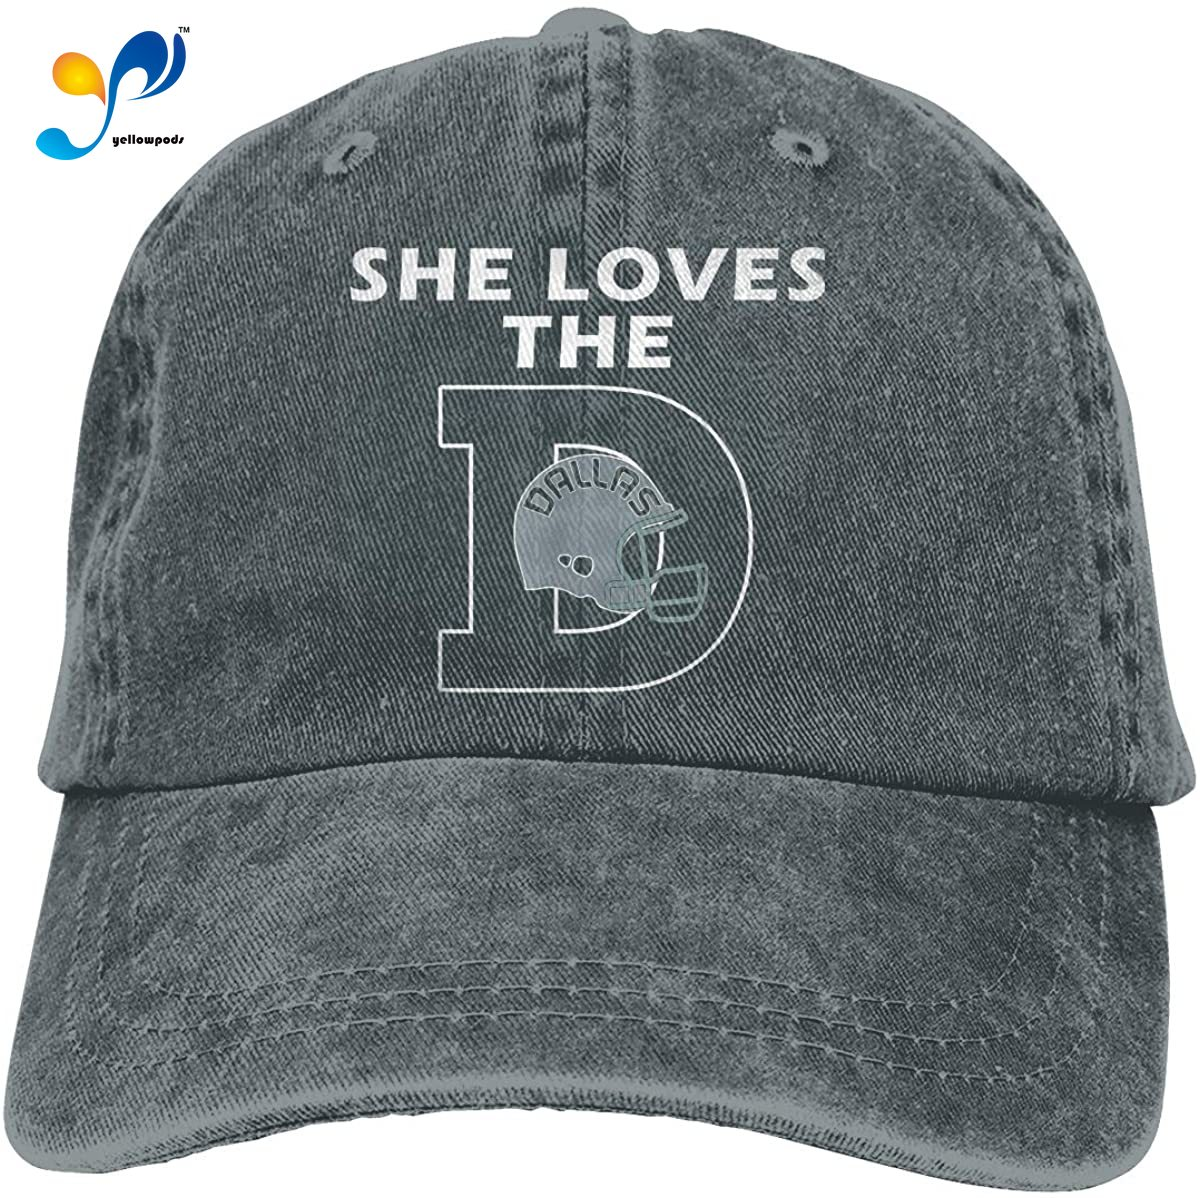 She Loves The Dallas Texas City Classic Football Commemorate Casquette Cap Vintage Adjustable Unisex Baseball Hat